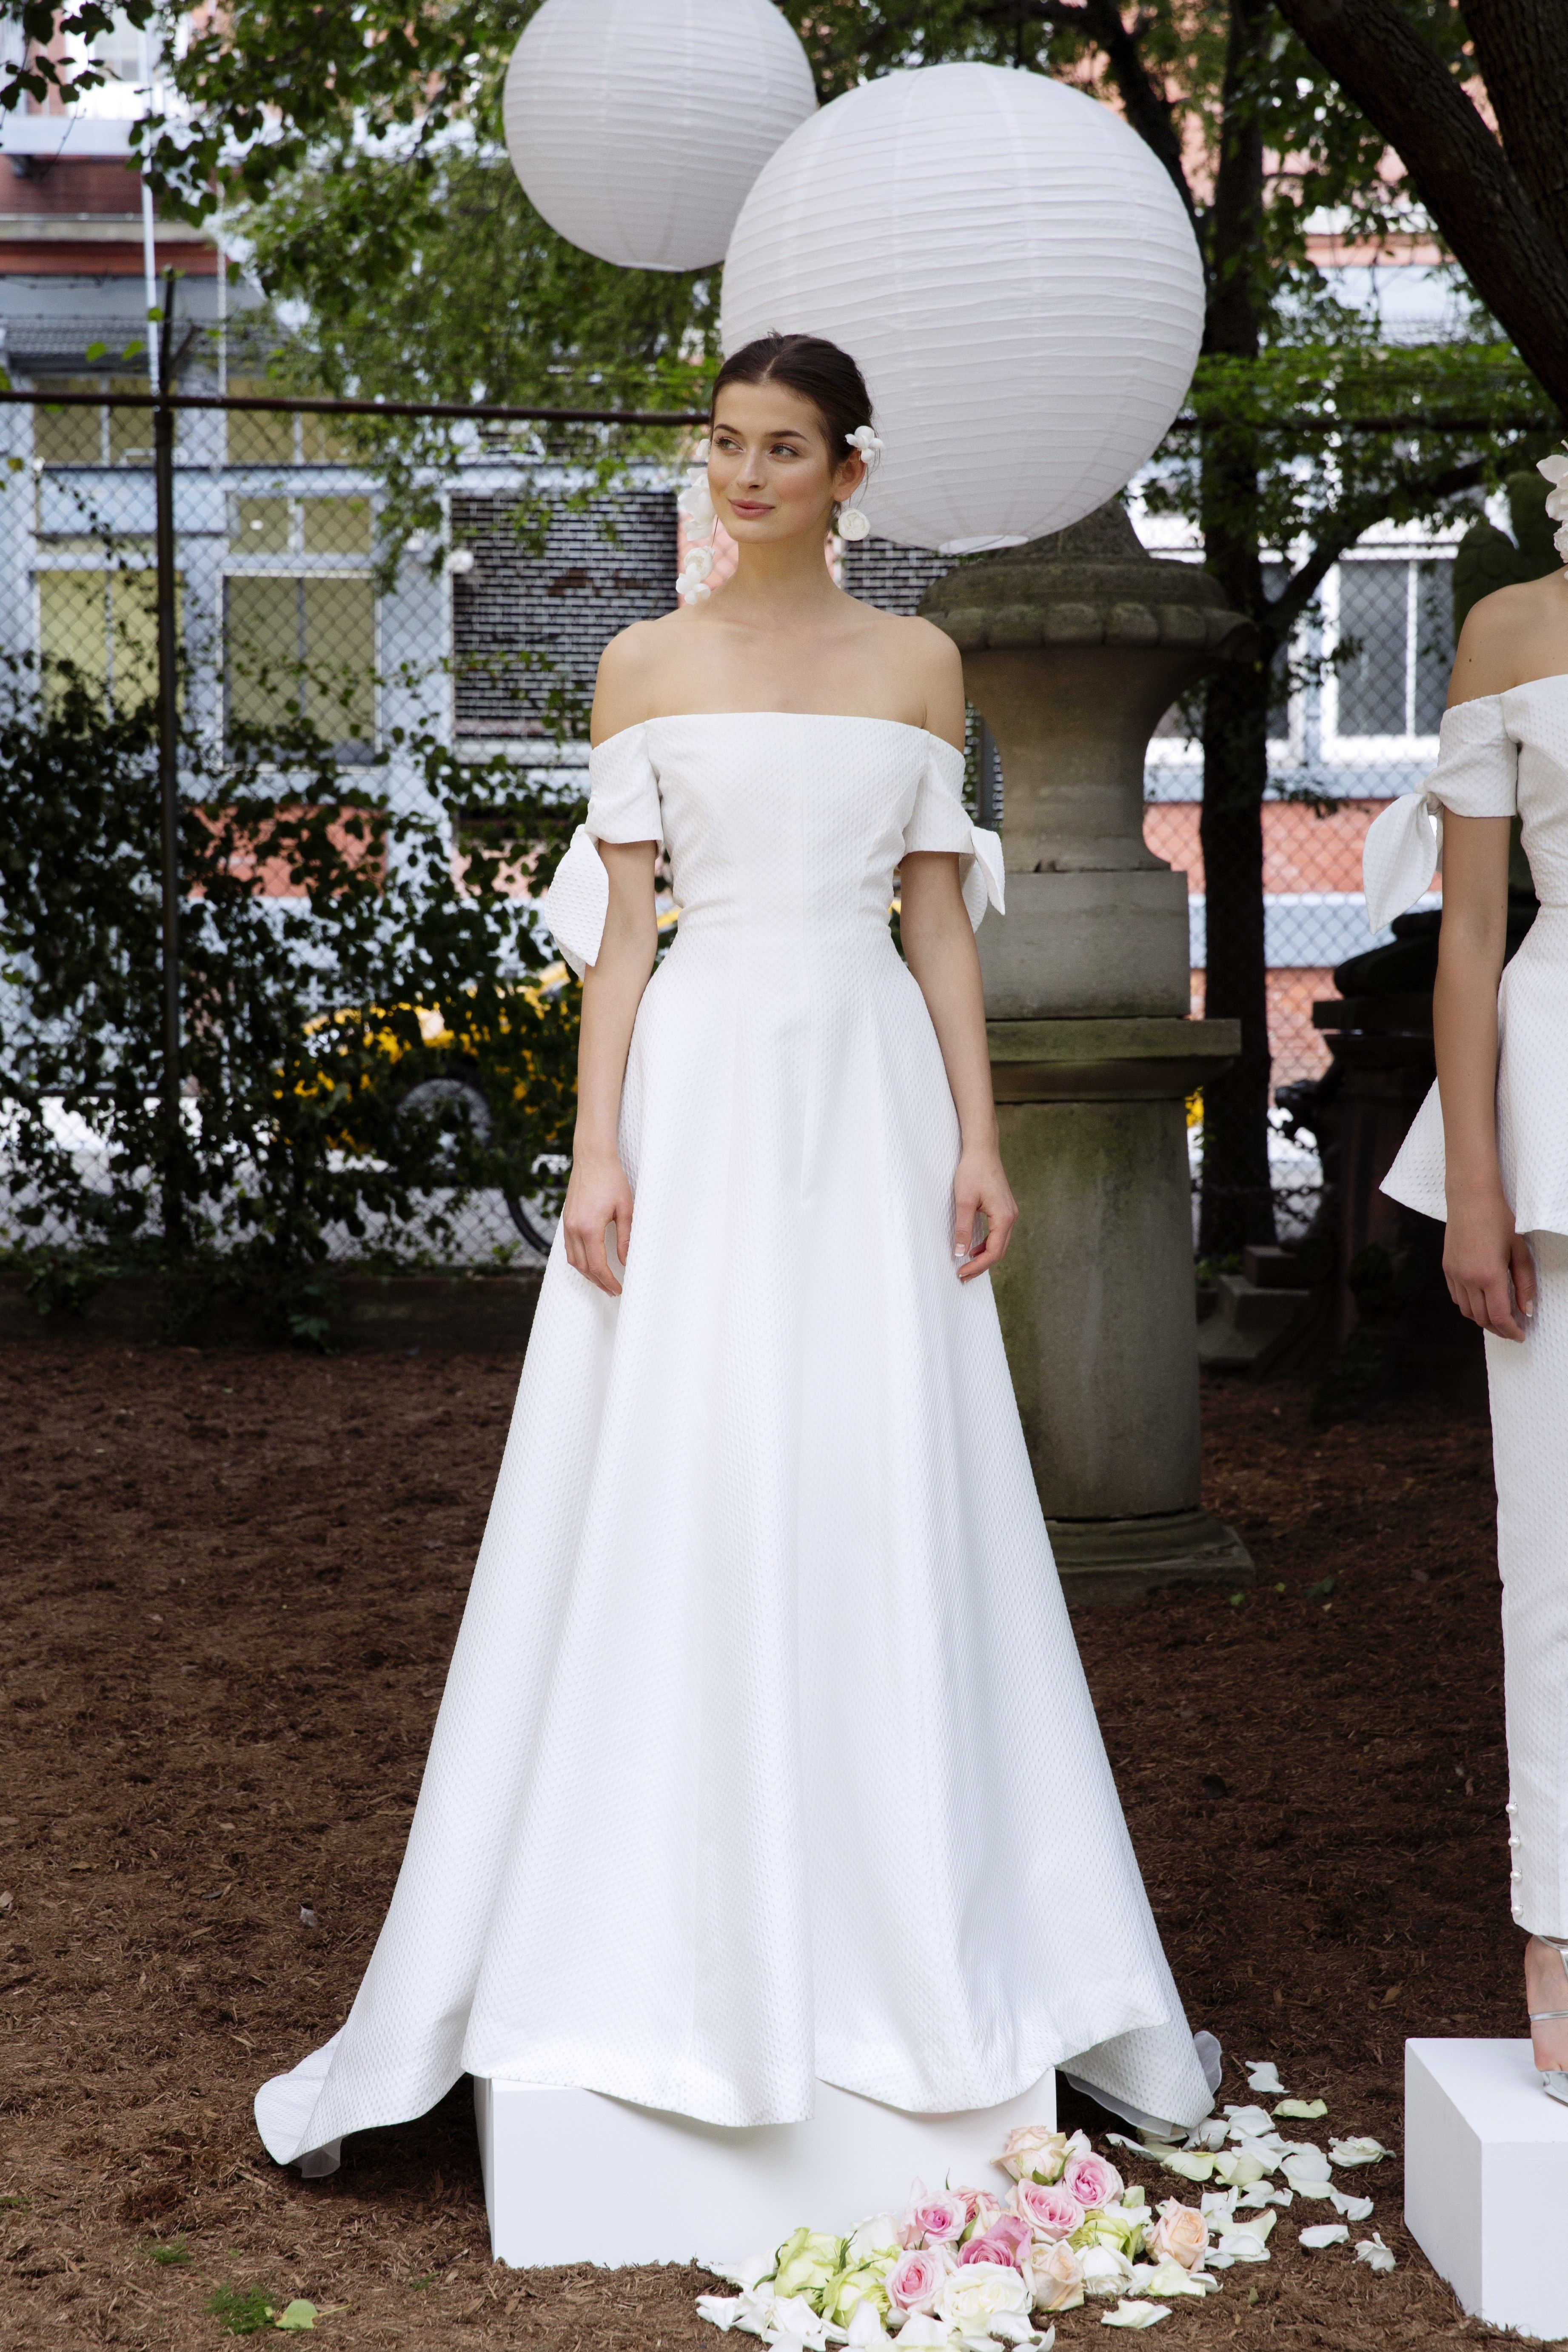 Lela rose bridal u wedding dress collection fall brides i